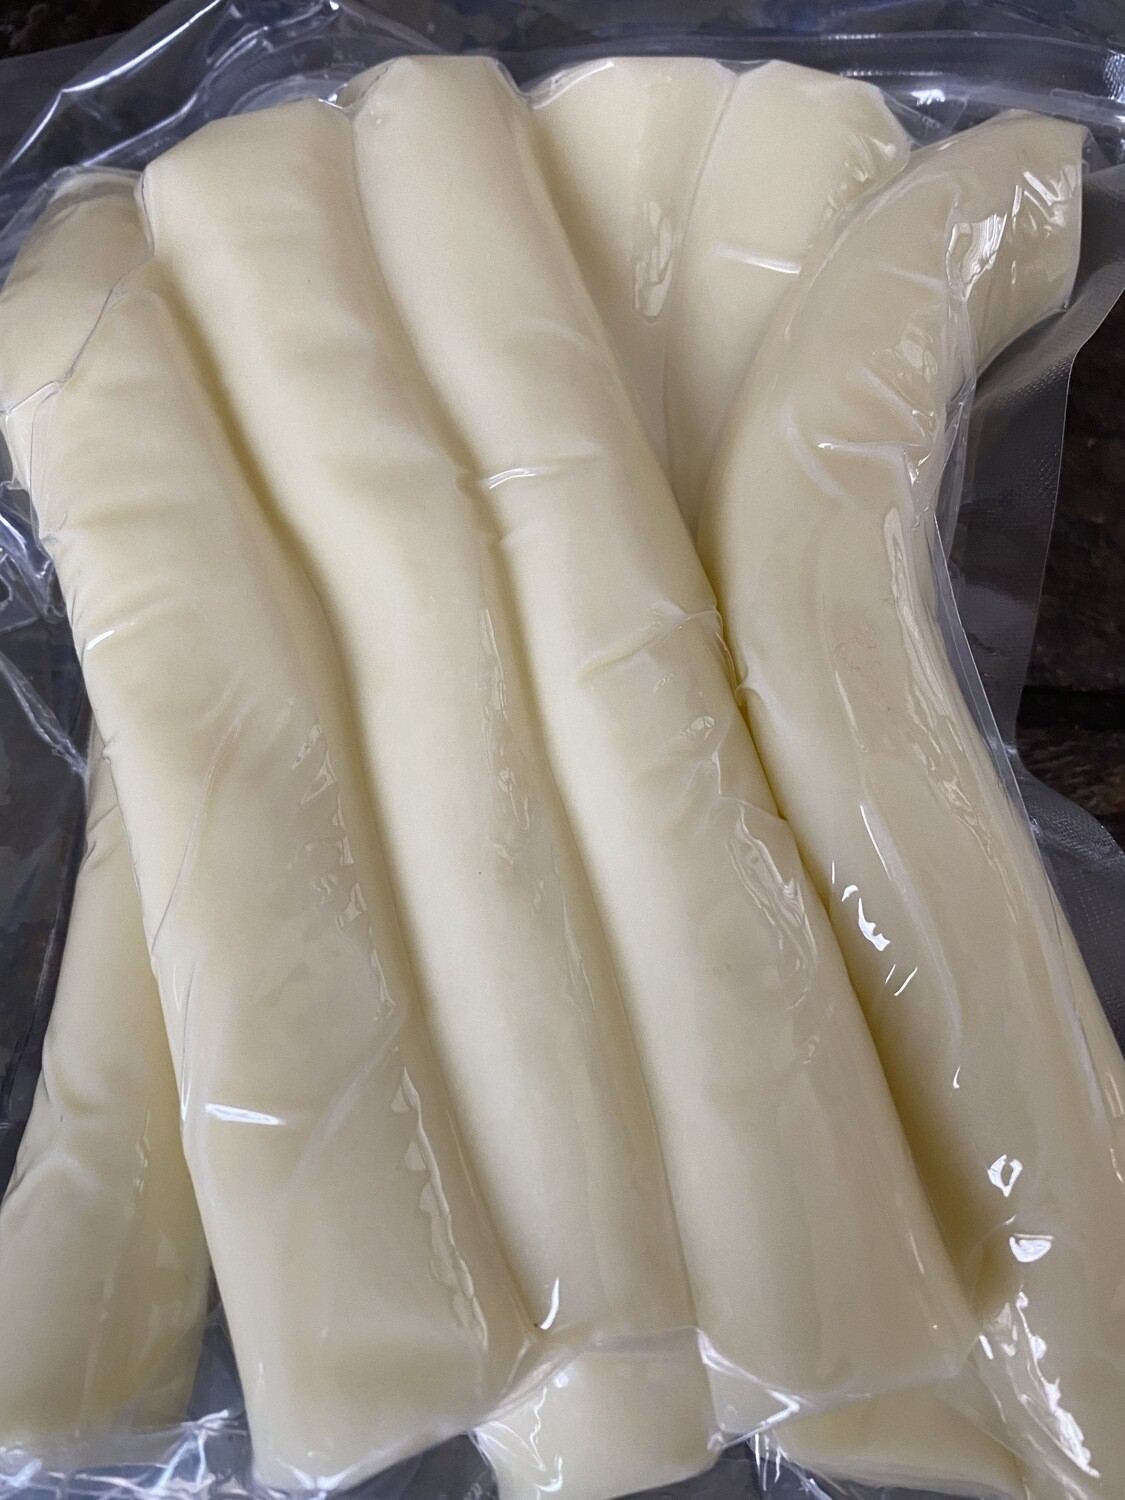 Mozzarella String, Verns, 1 lb.